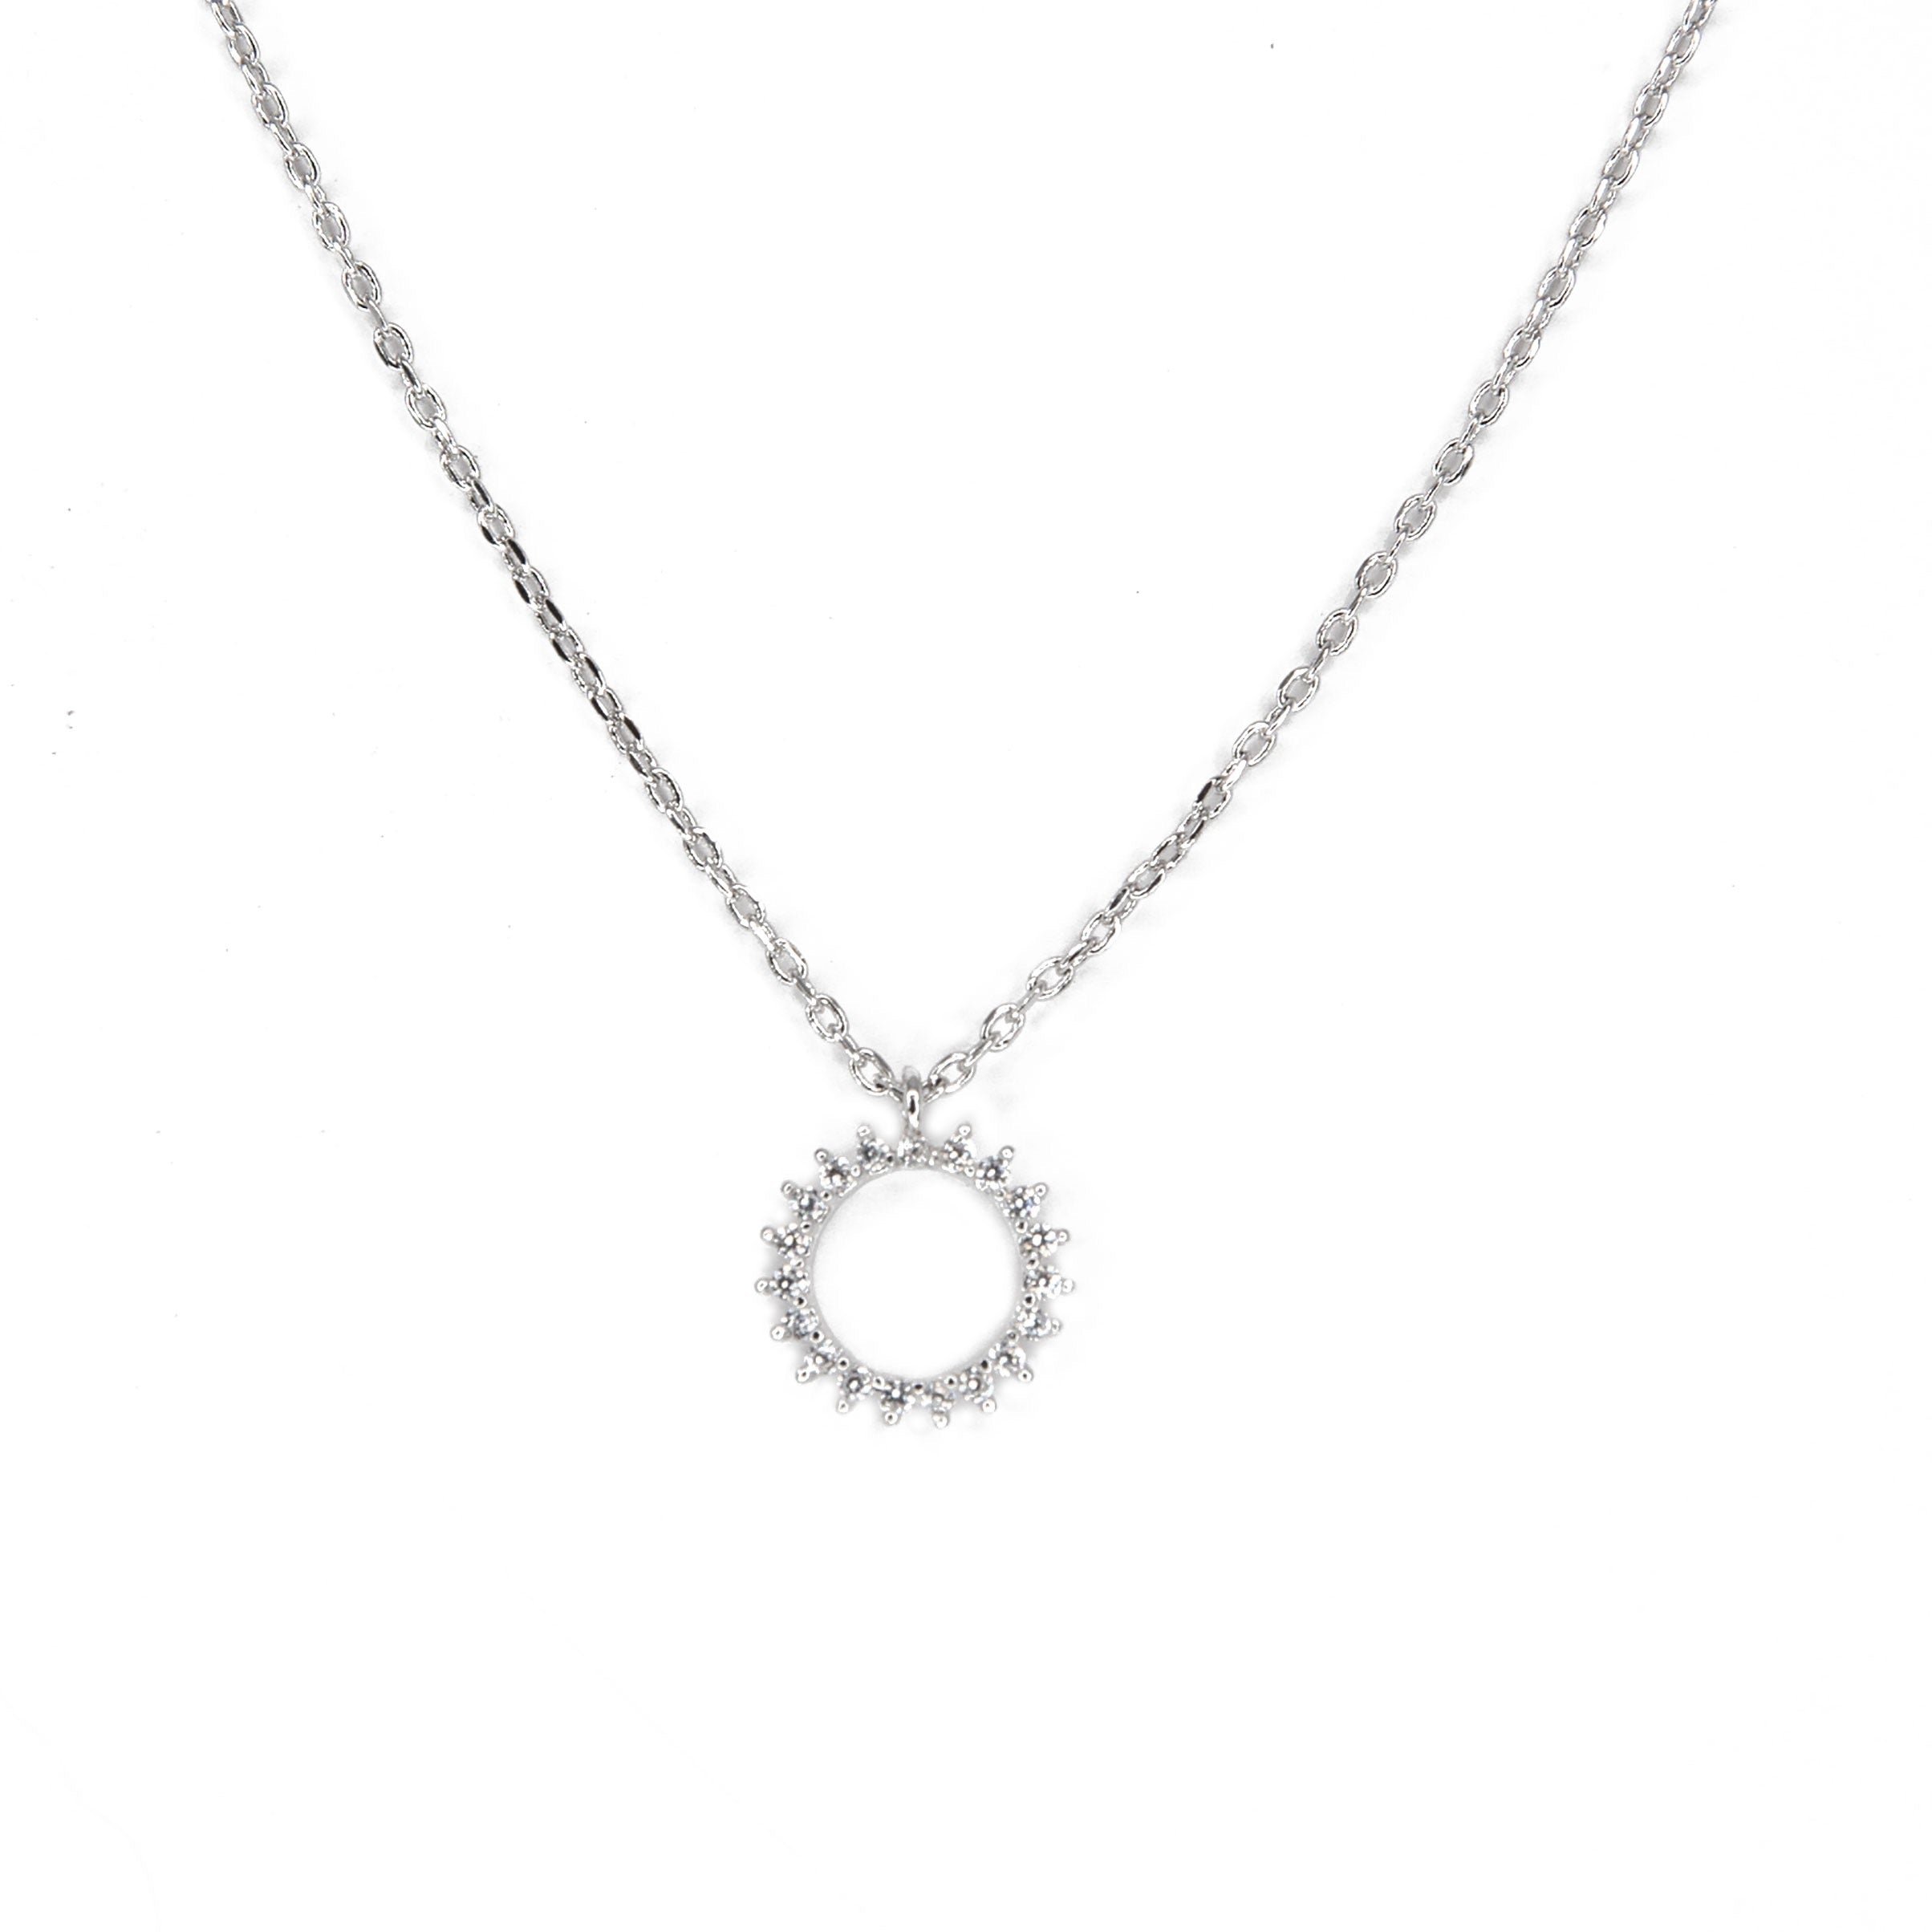 sterling silver open circle necklace